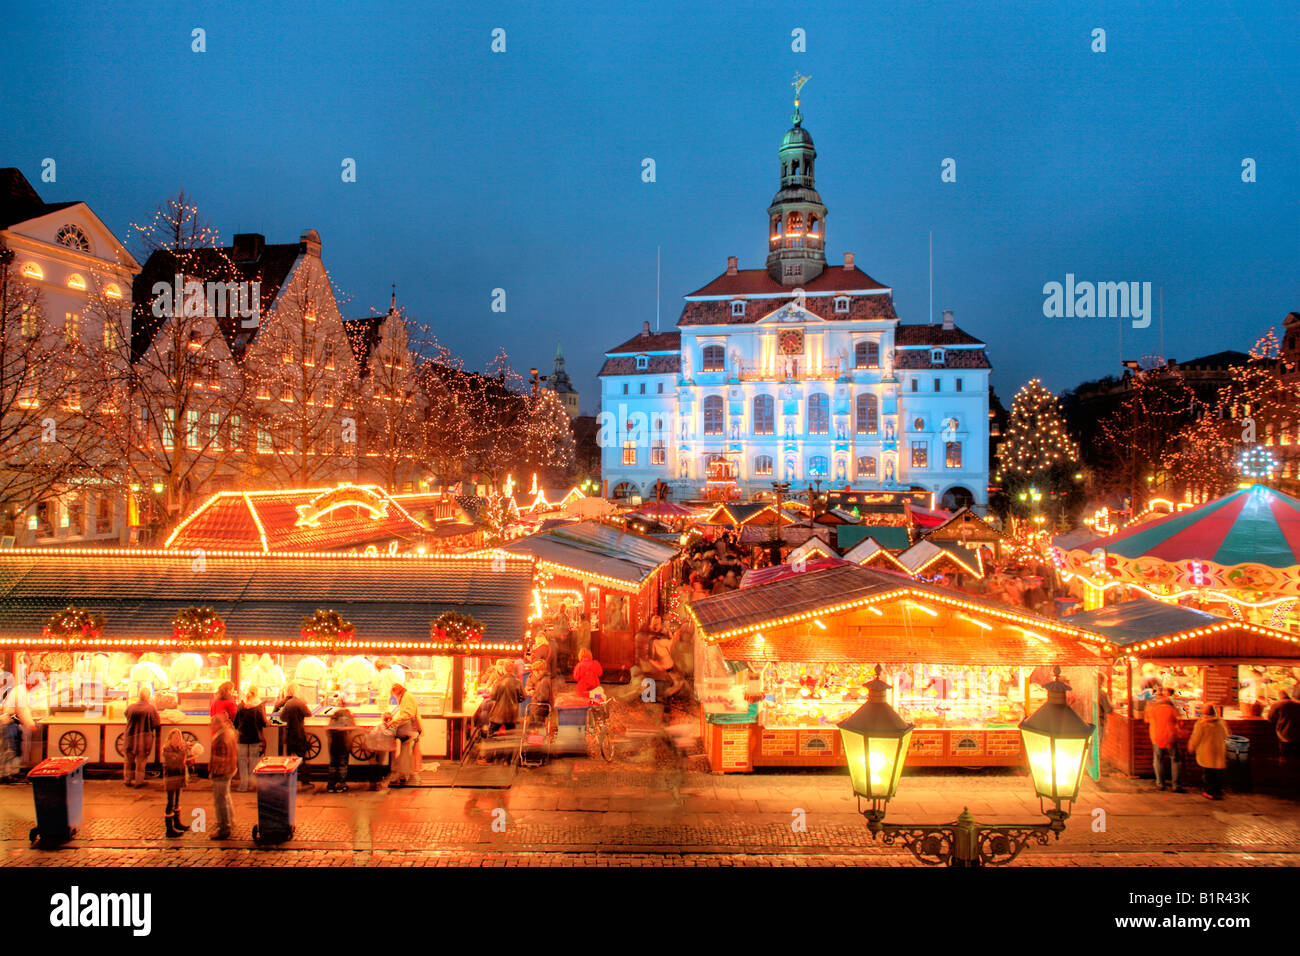 Christmas Market in front of the town hall of Lueneburg in Northern Germany Stock Photo